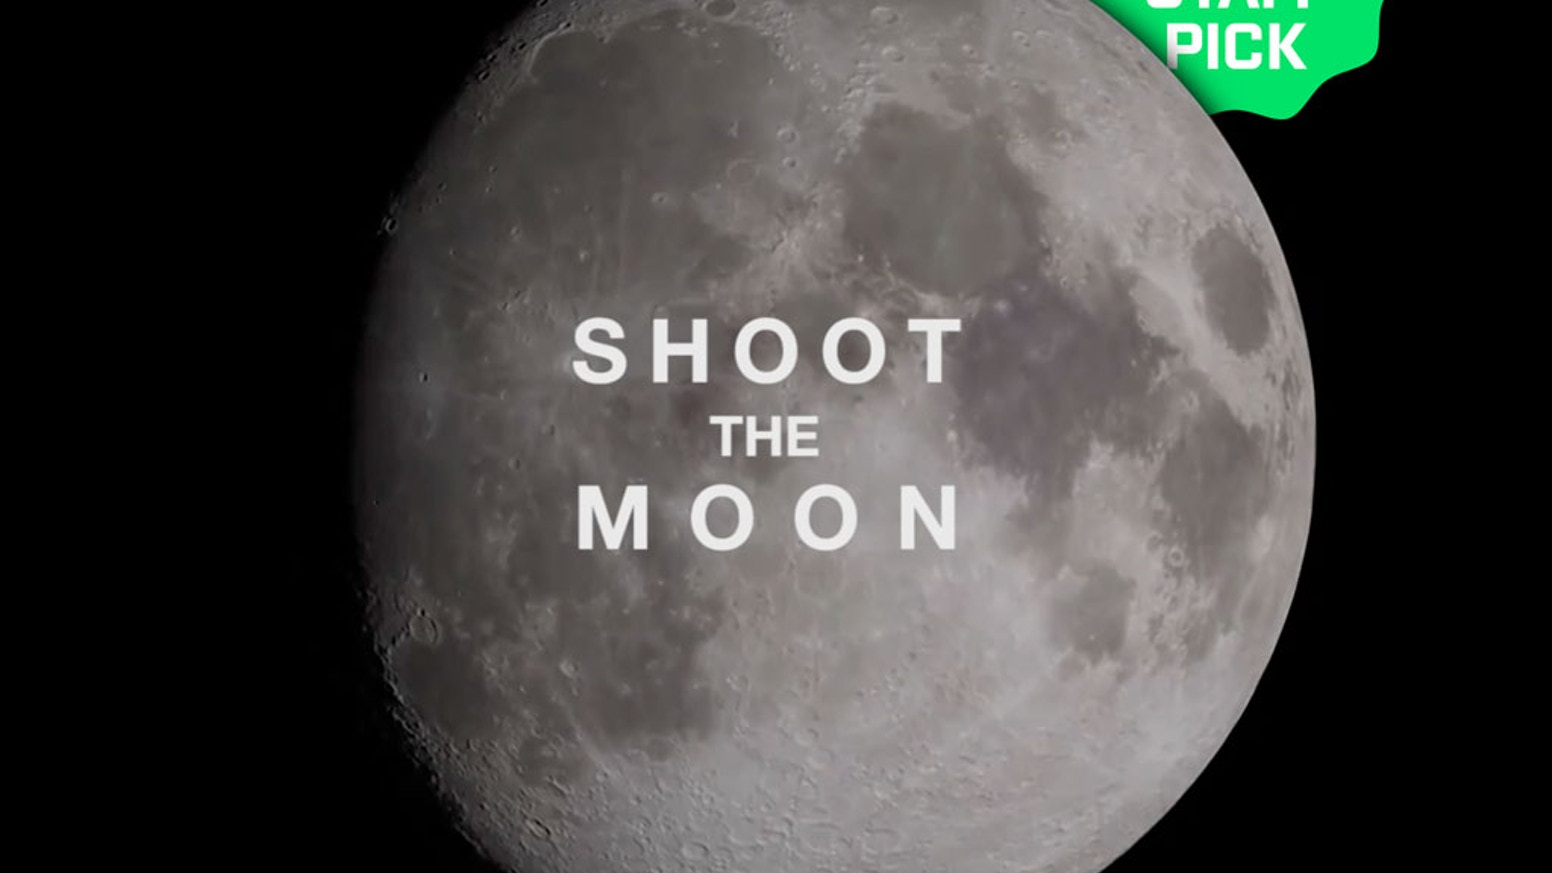 shoot the moon a film about sacrifice and a space elevator by shoot